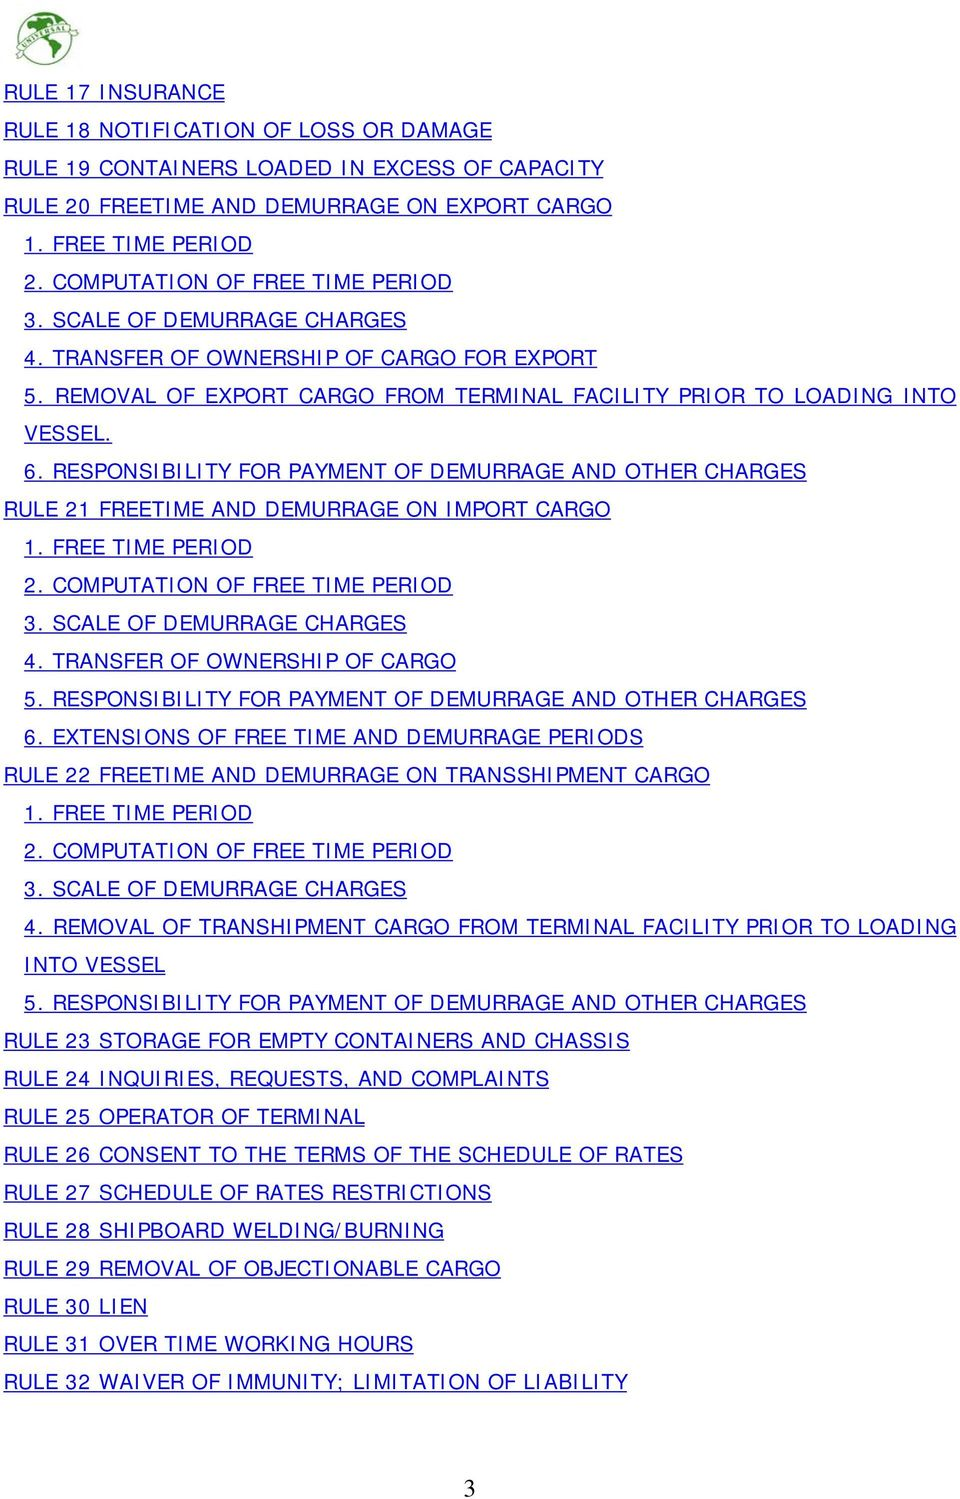 RESPONSIBILITY FOR PAYMENT OF DEMURRAGE AND OTHER CHARGES RULE 21 FREETIME AND DEMURRAGE ON IMPORT CARGO 1. FREE TIME PERIOD 2. COMPUTATION OF FREE TIME PERIOD 3. SCALE OF DEMURRAGE CHARGES 4.